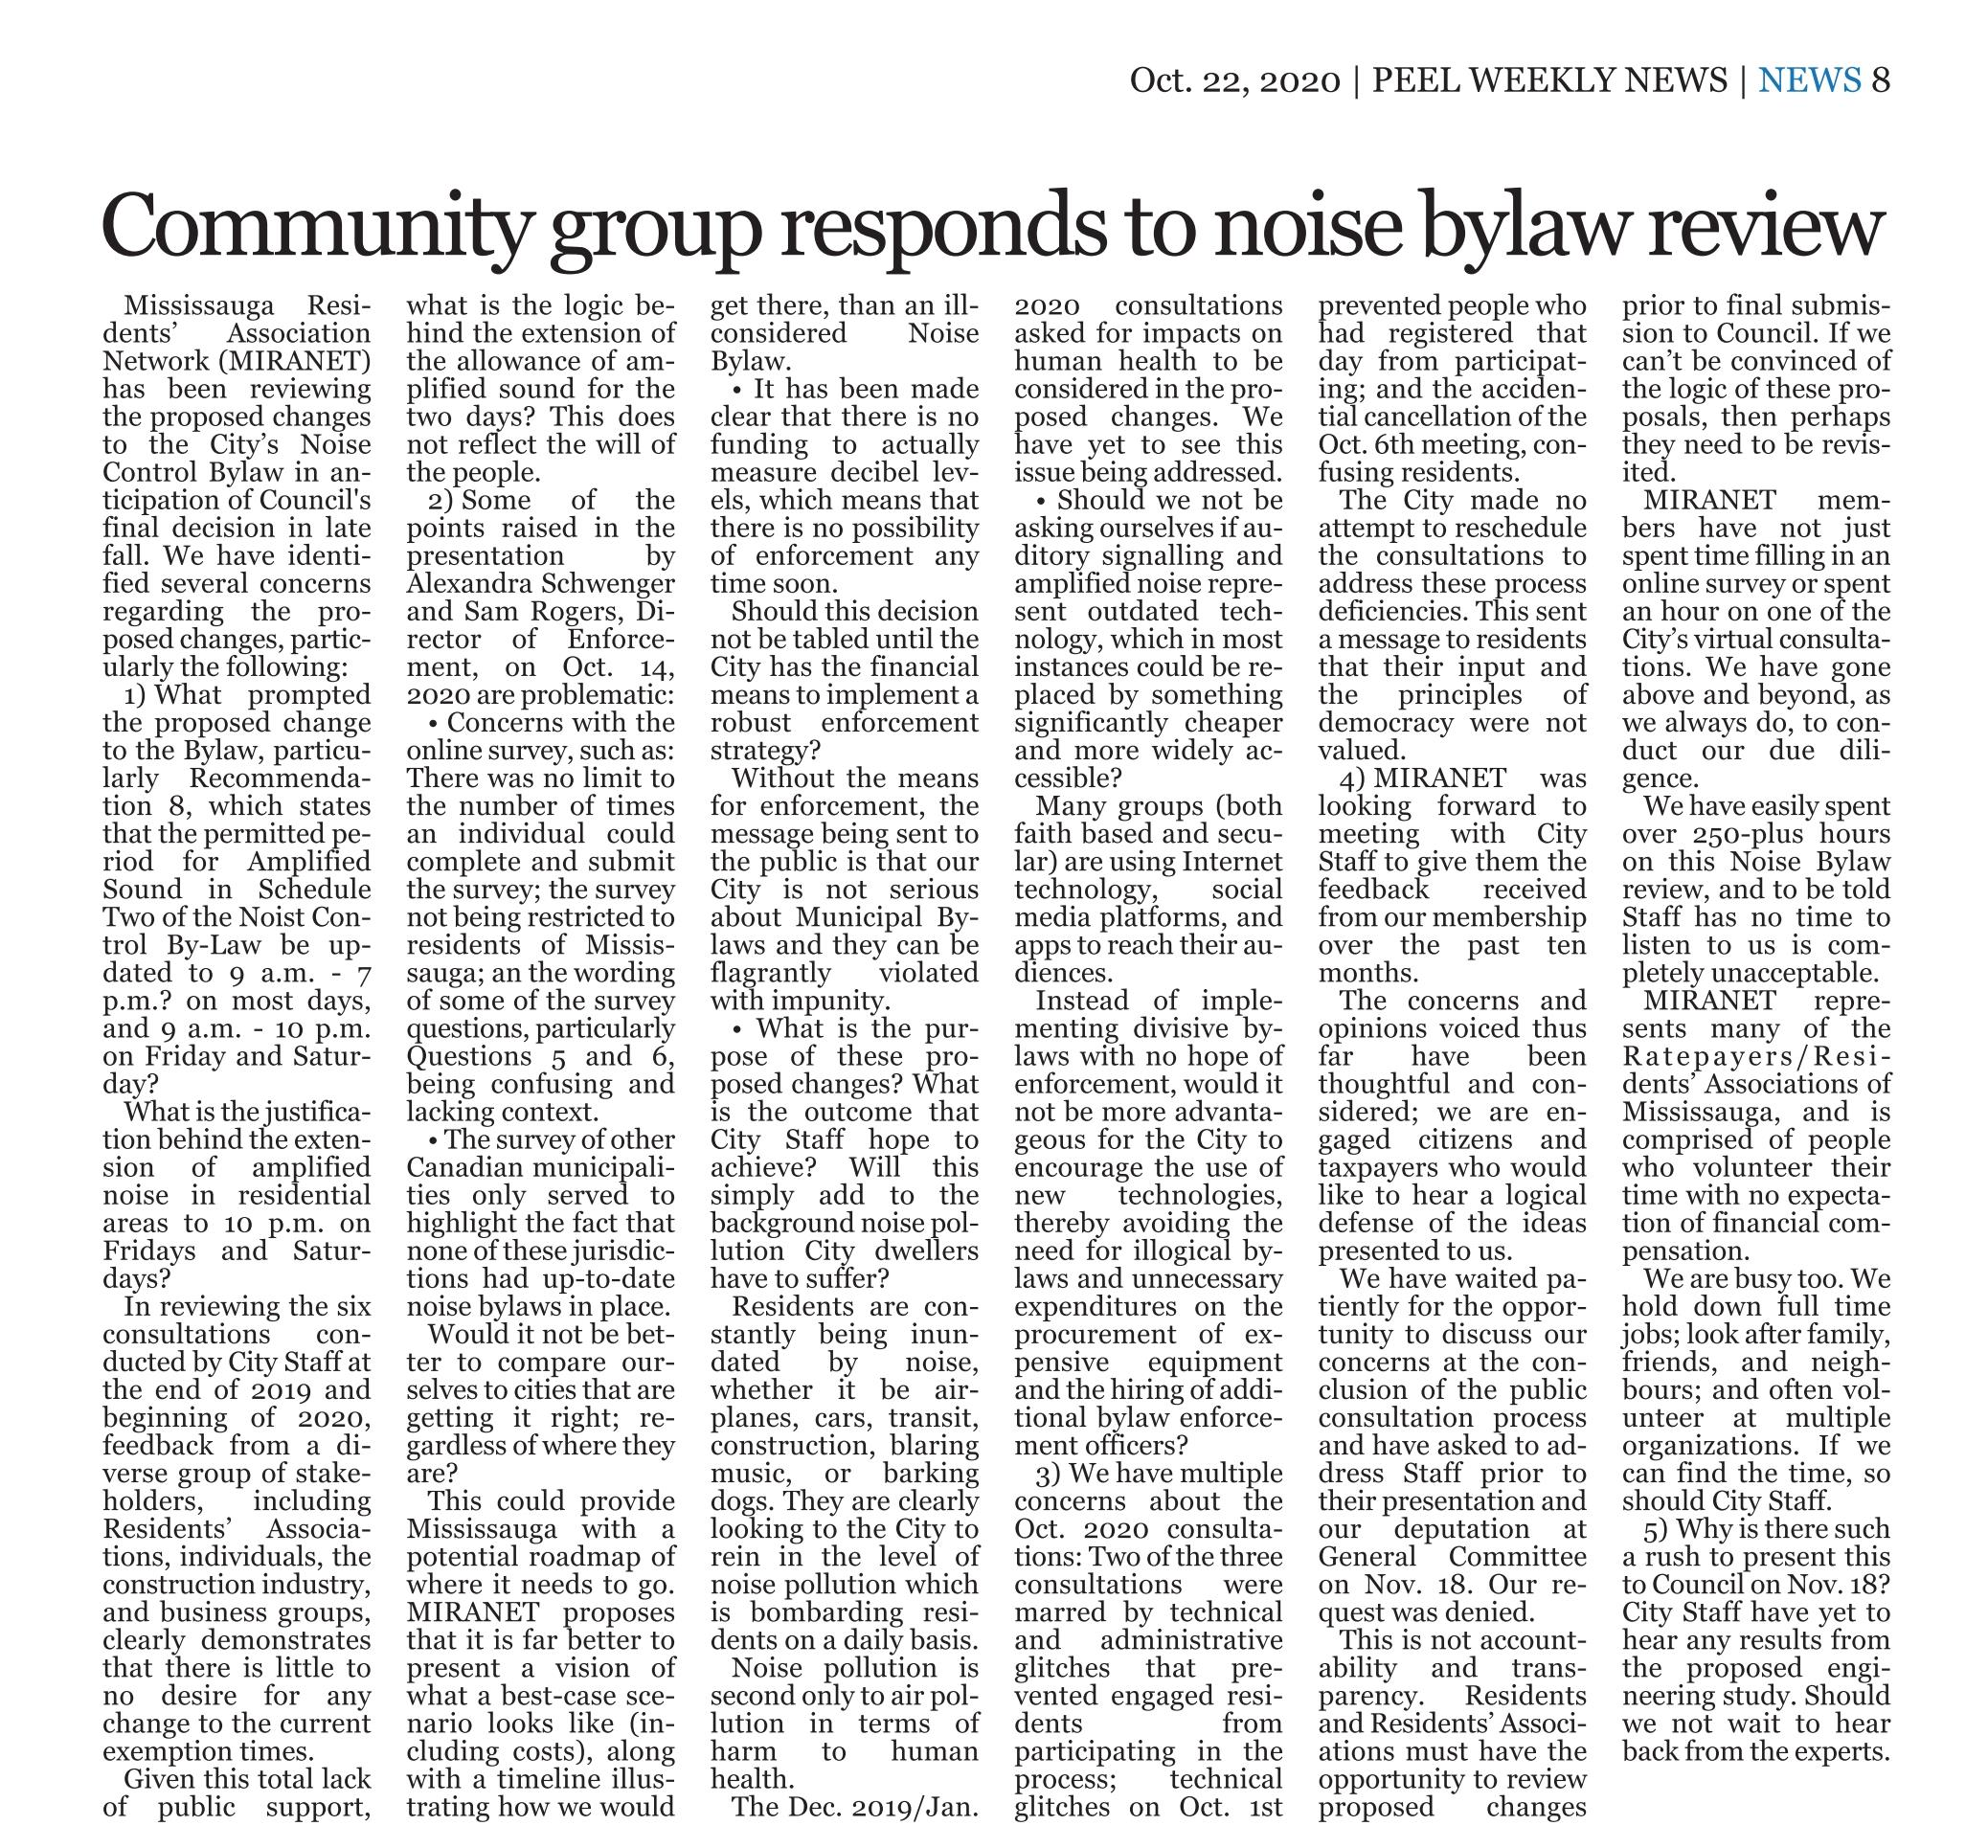 MIRANET's response to noise bylaw review in Peel Weekly News